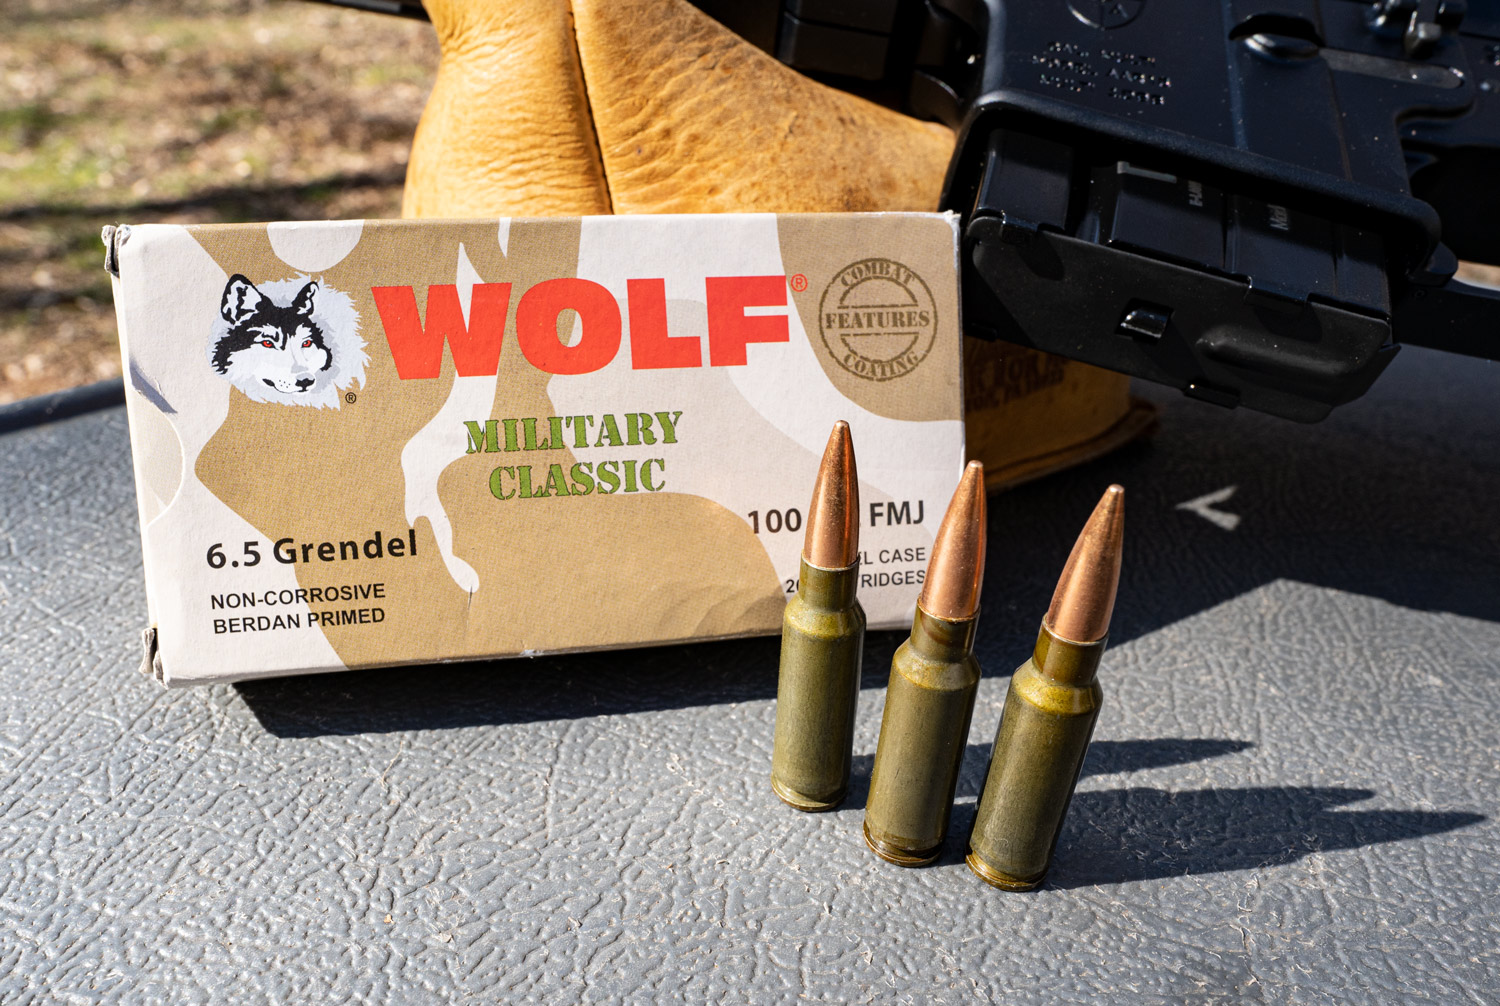 Wolf 6.5 Grendel ammo at a shooting range